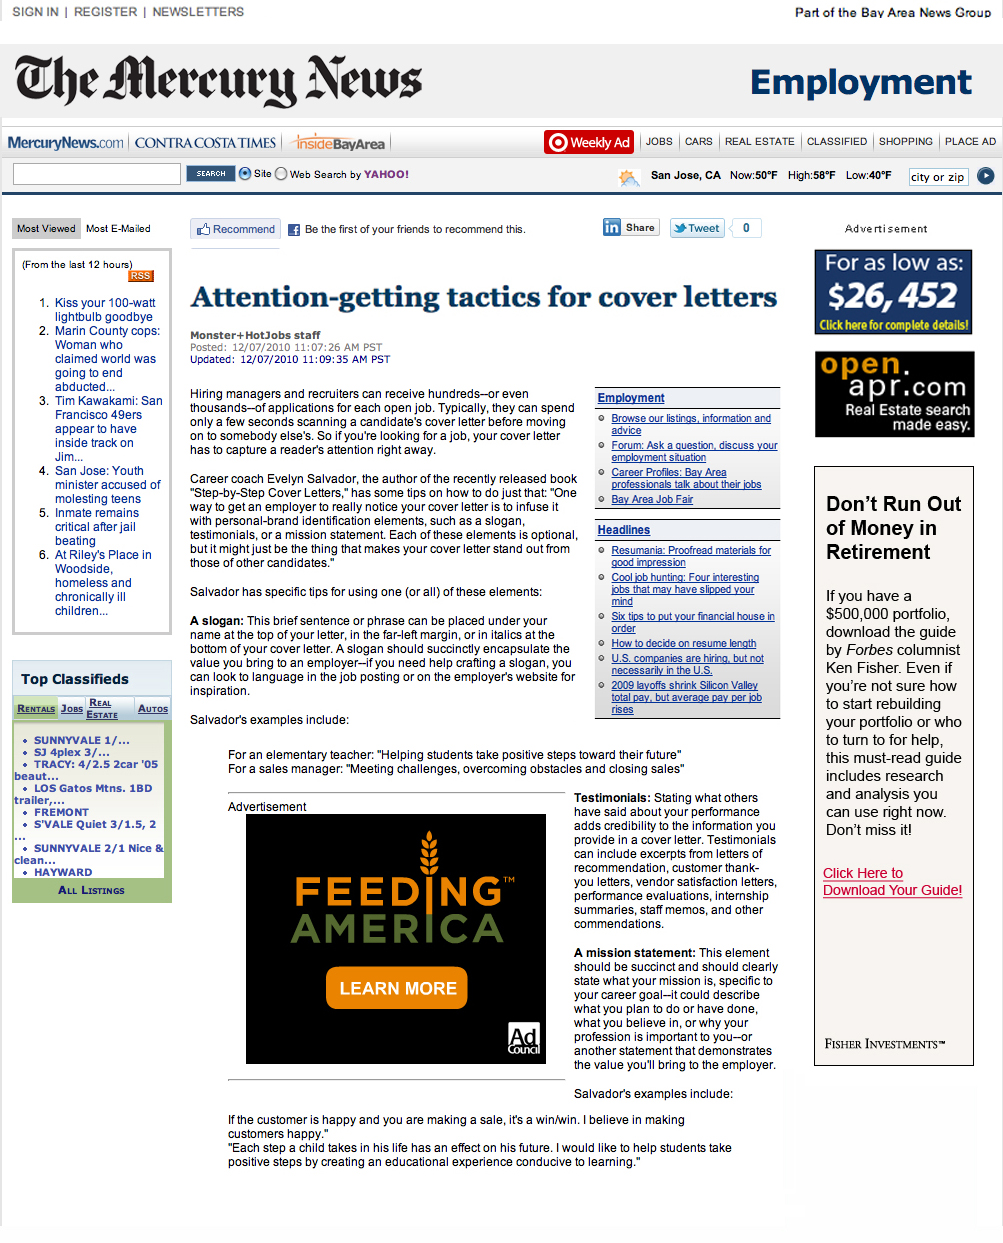 mercury news, contra costa times, inside bayarea - attntion-getting tactics for cover letters.jpg